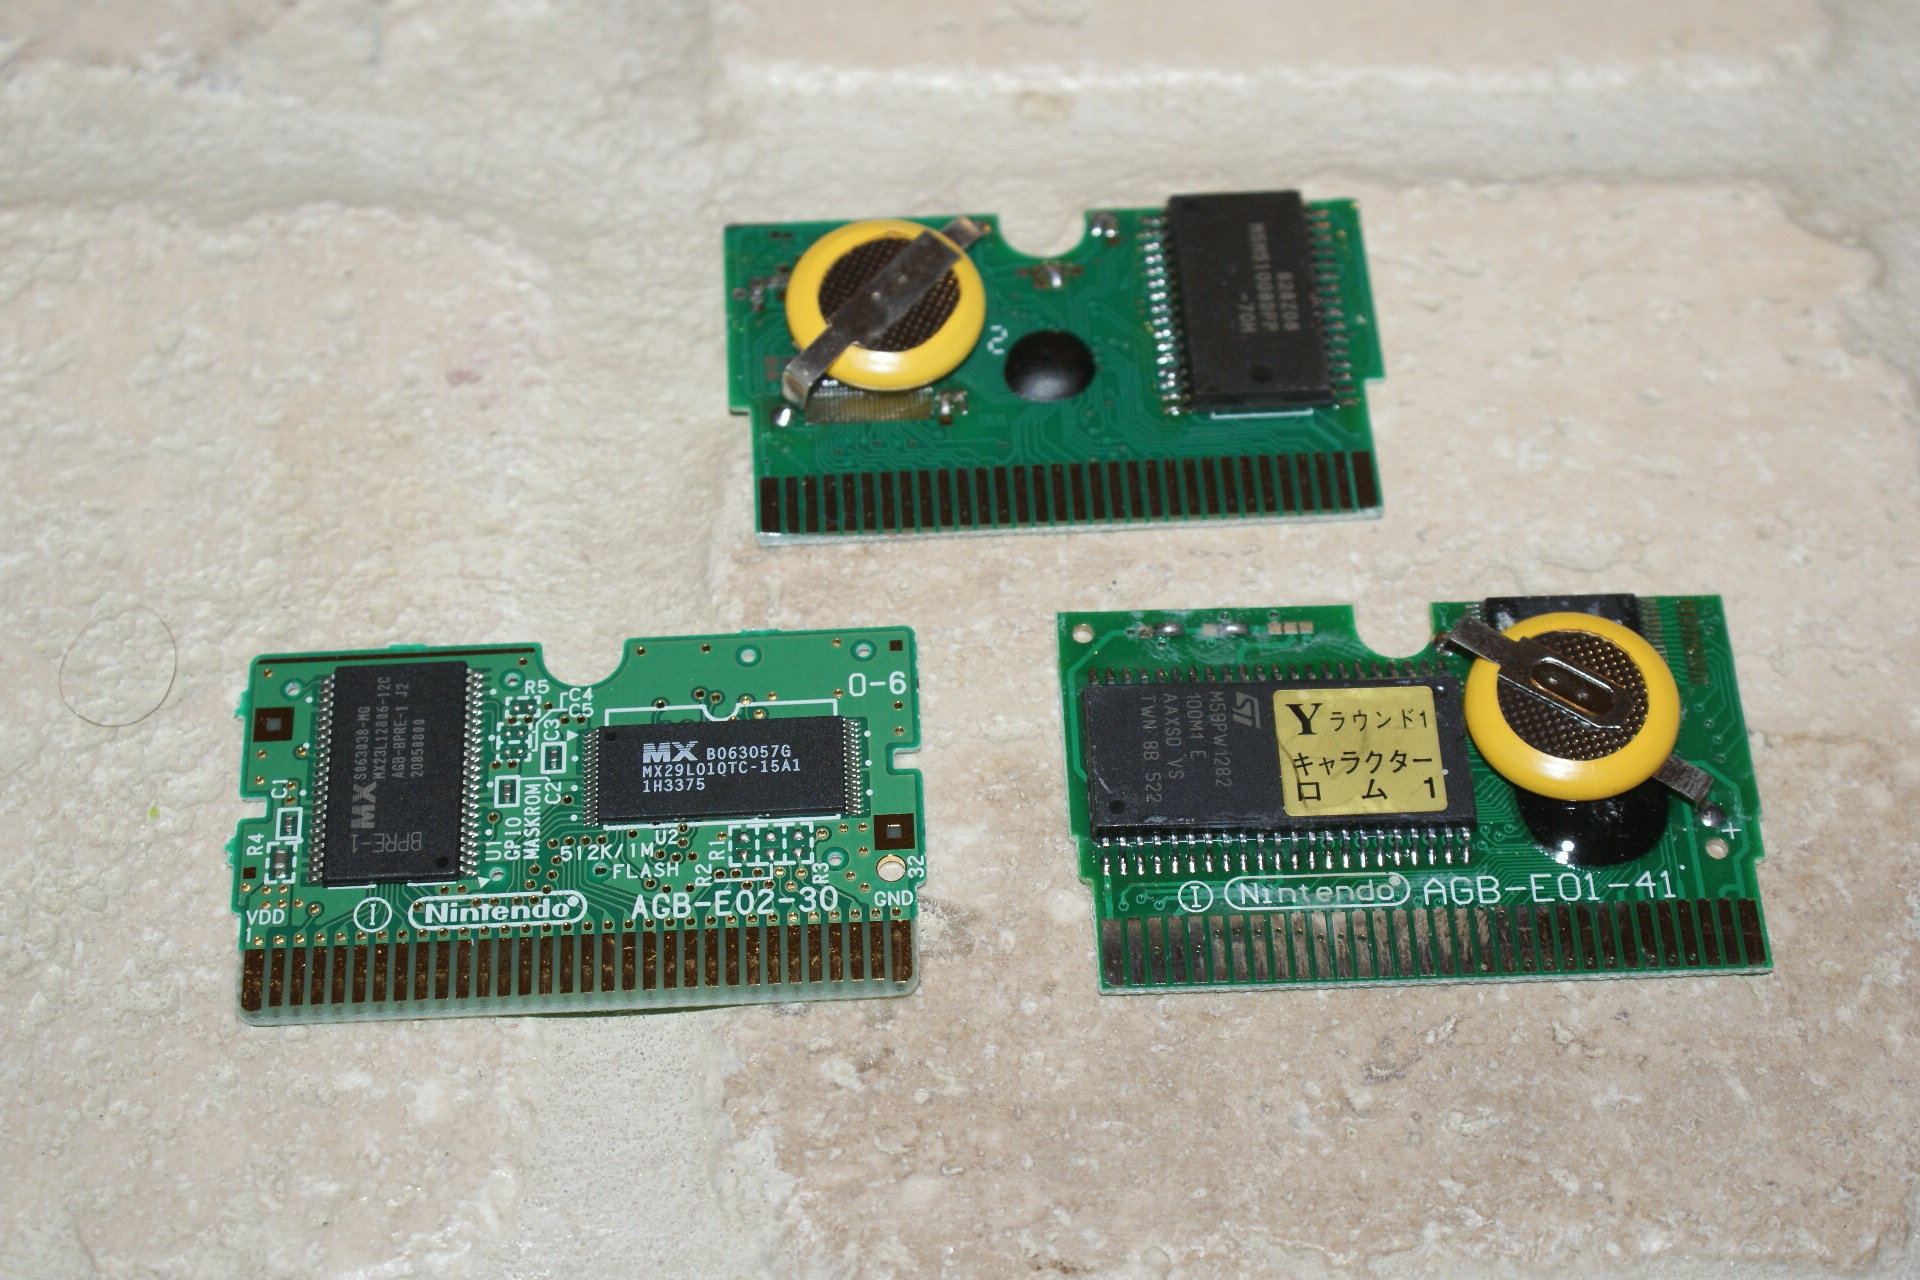 Identifying Fake Game Boy Advance Gba Games Justin Paulin Posts With Printed Circuit Boards Label Front Bottom Left Is Real